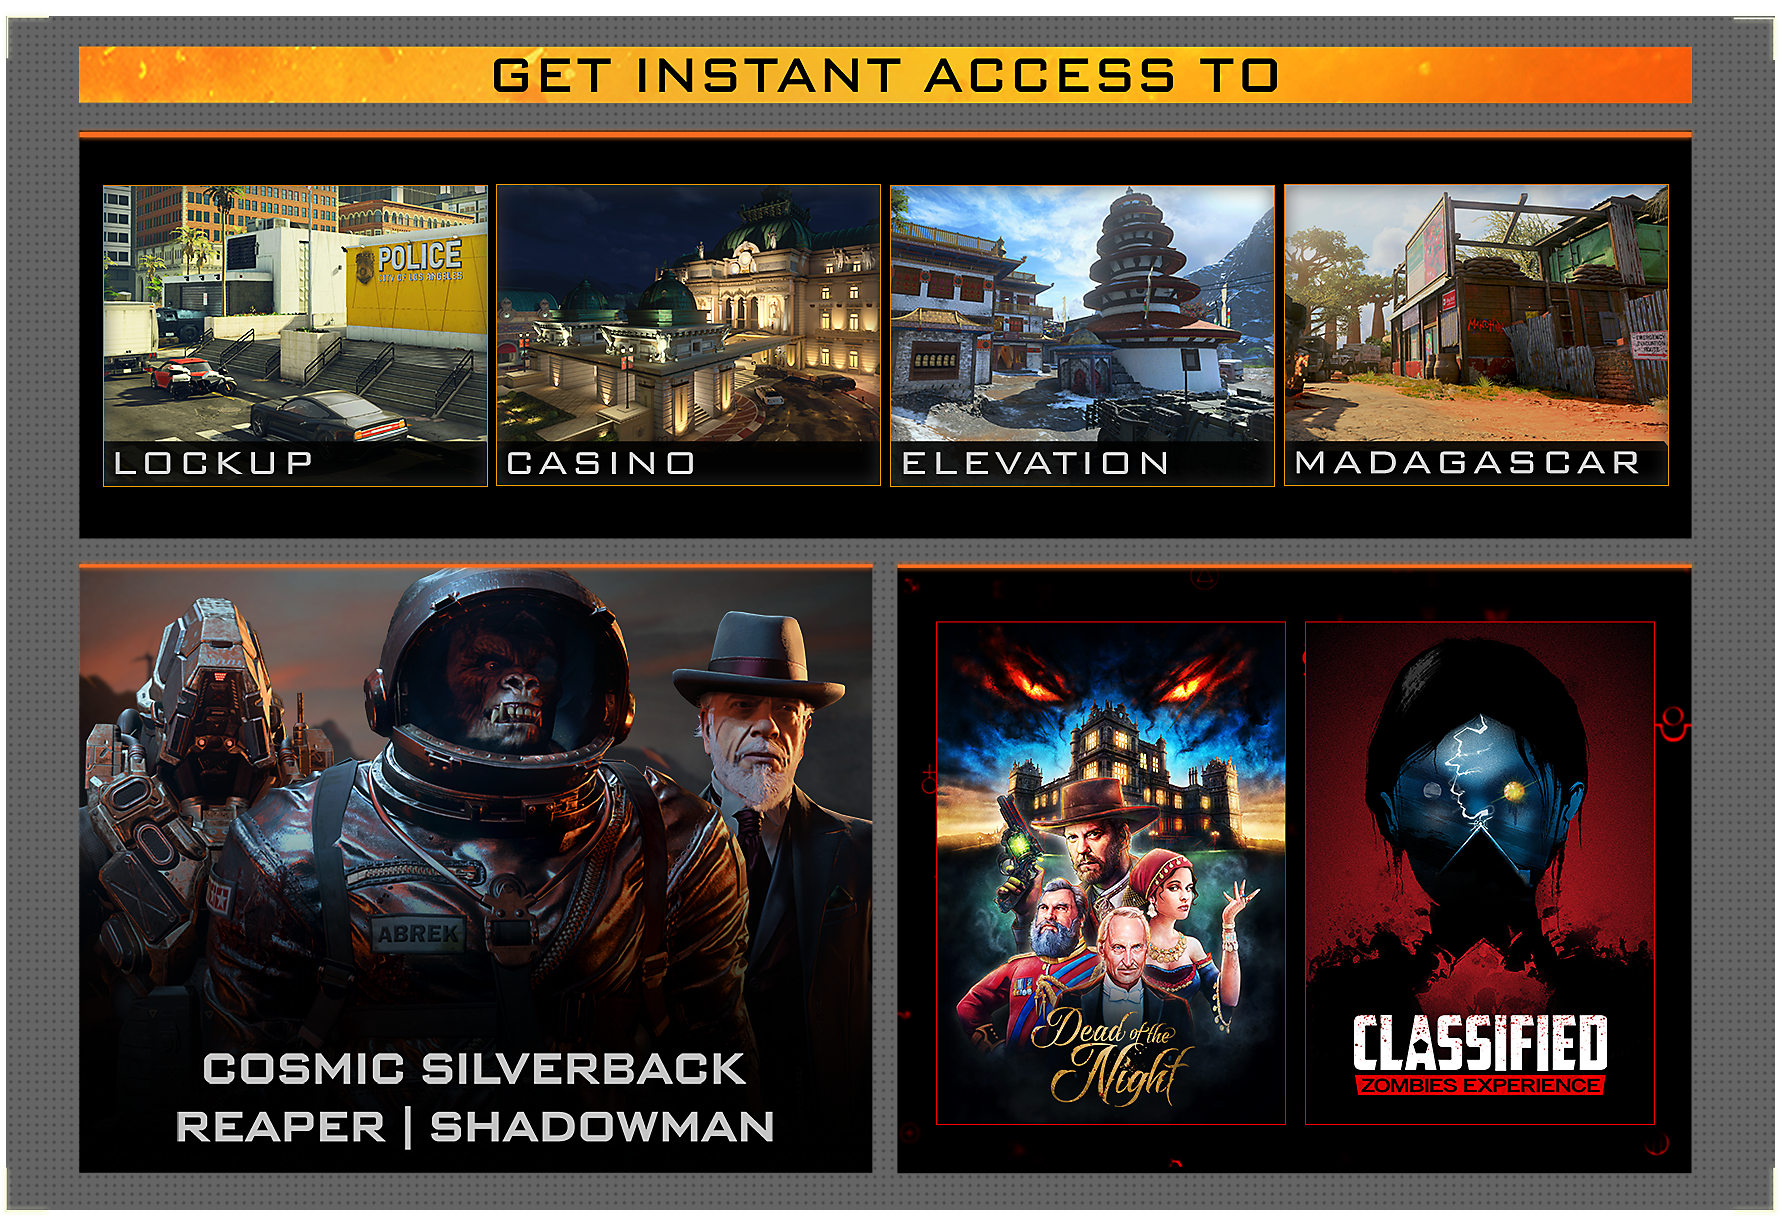 Call of Duty: Black Ops 4 - Black Ops Pass Contents